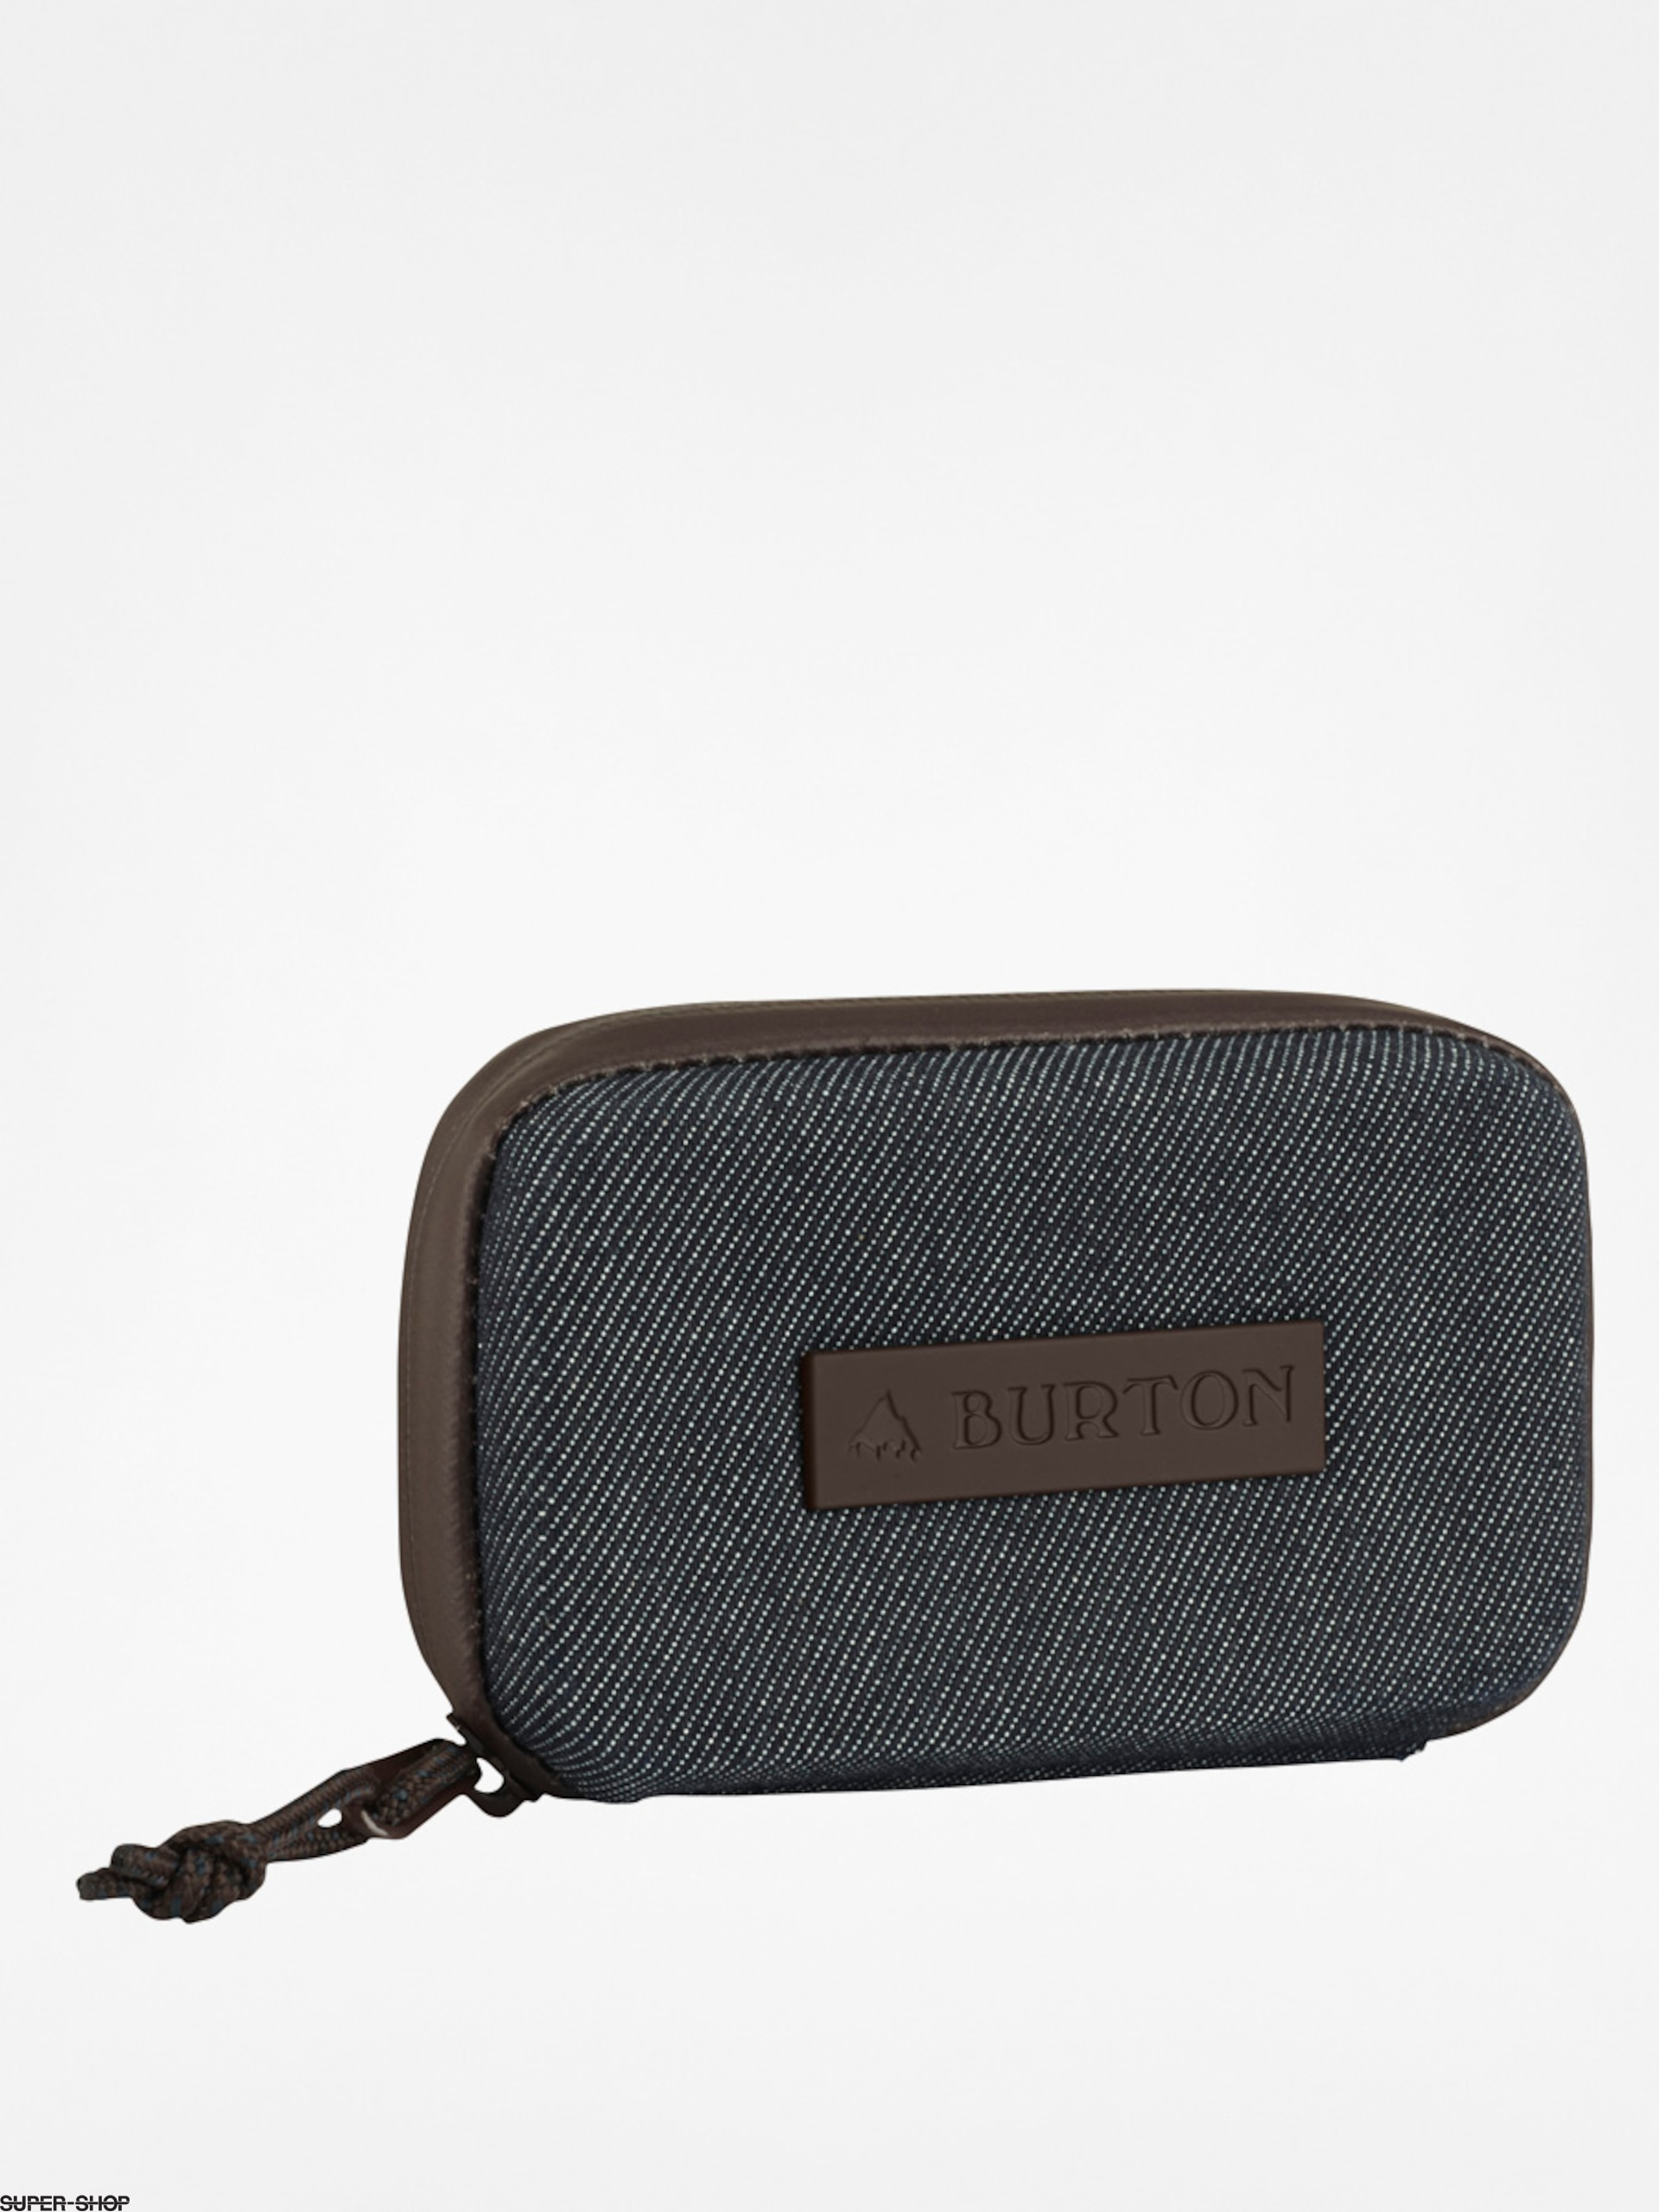 Burton Handbag Case The Kit 2 0 (denim)